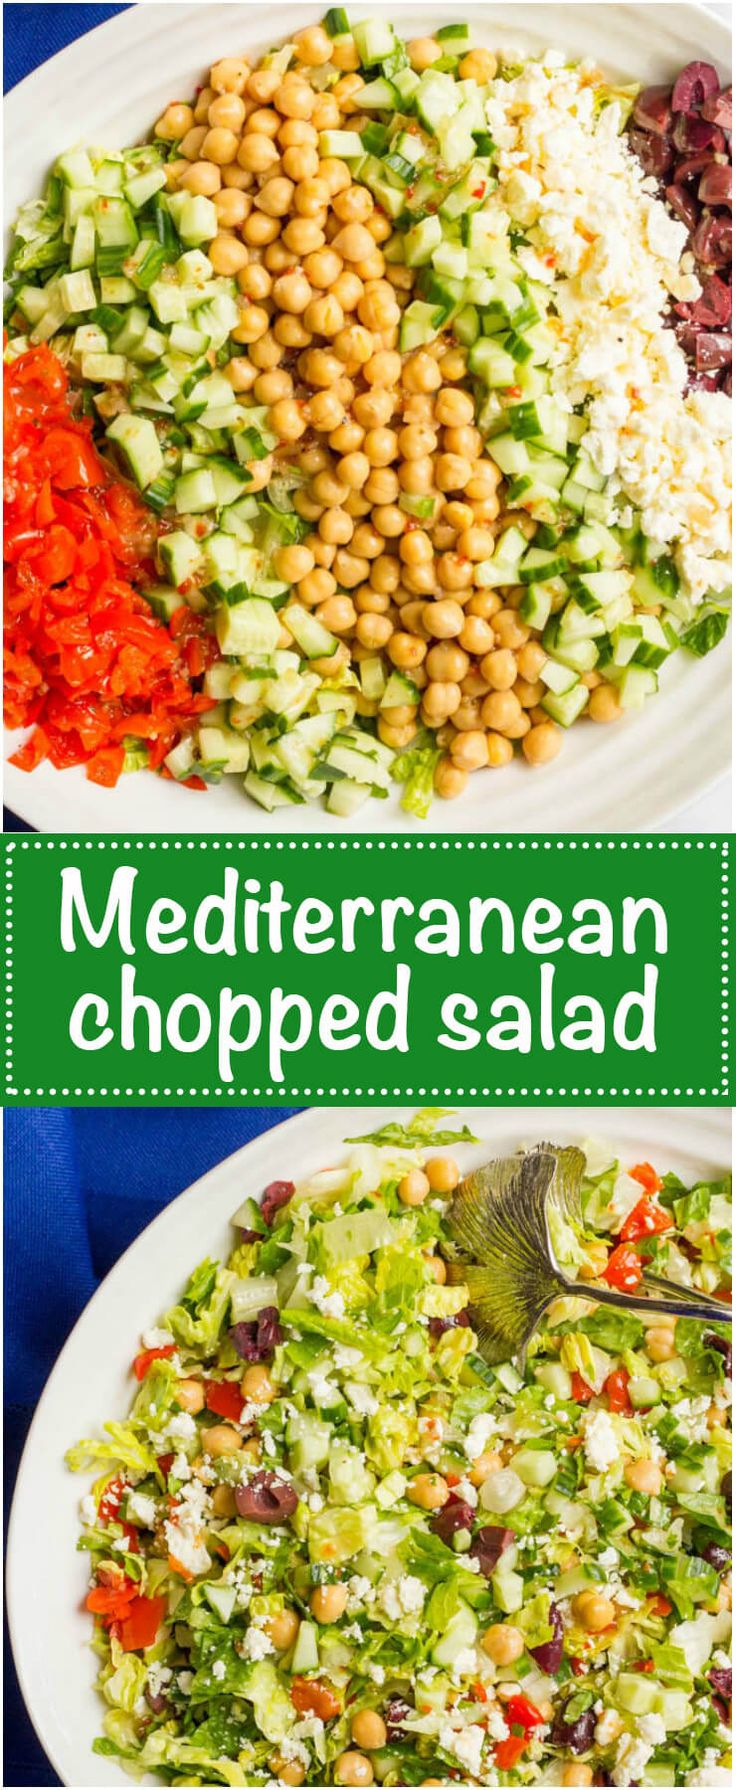 Mediterranean Chopped Salad is a crunchy, flavorful salad with chick peas, olives and feta cheese - perfect for a vegetarian and gluten-free lunch or light dinner! | www.familyfoodonthetable.com